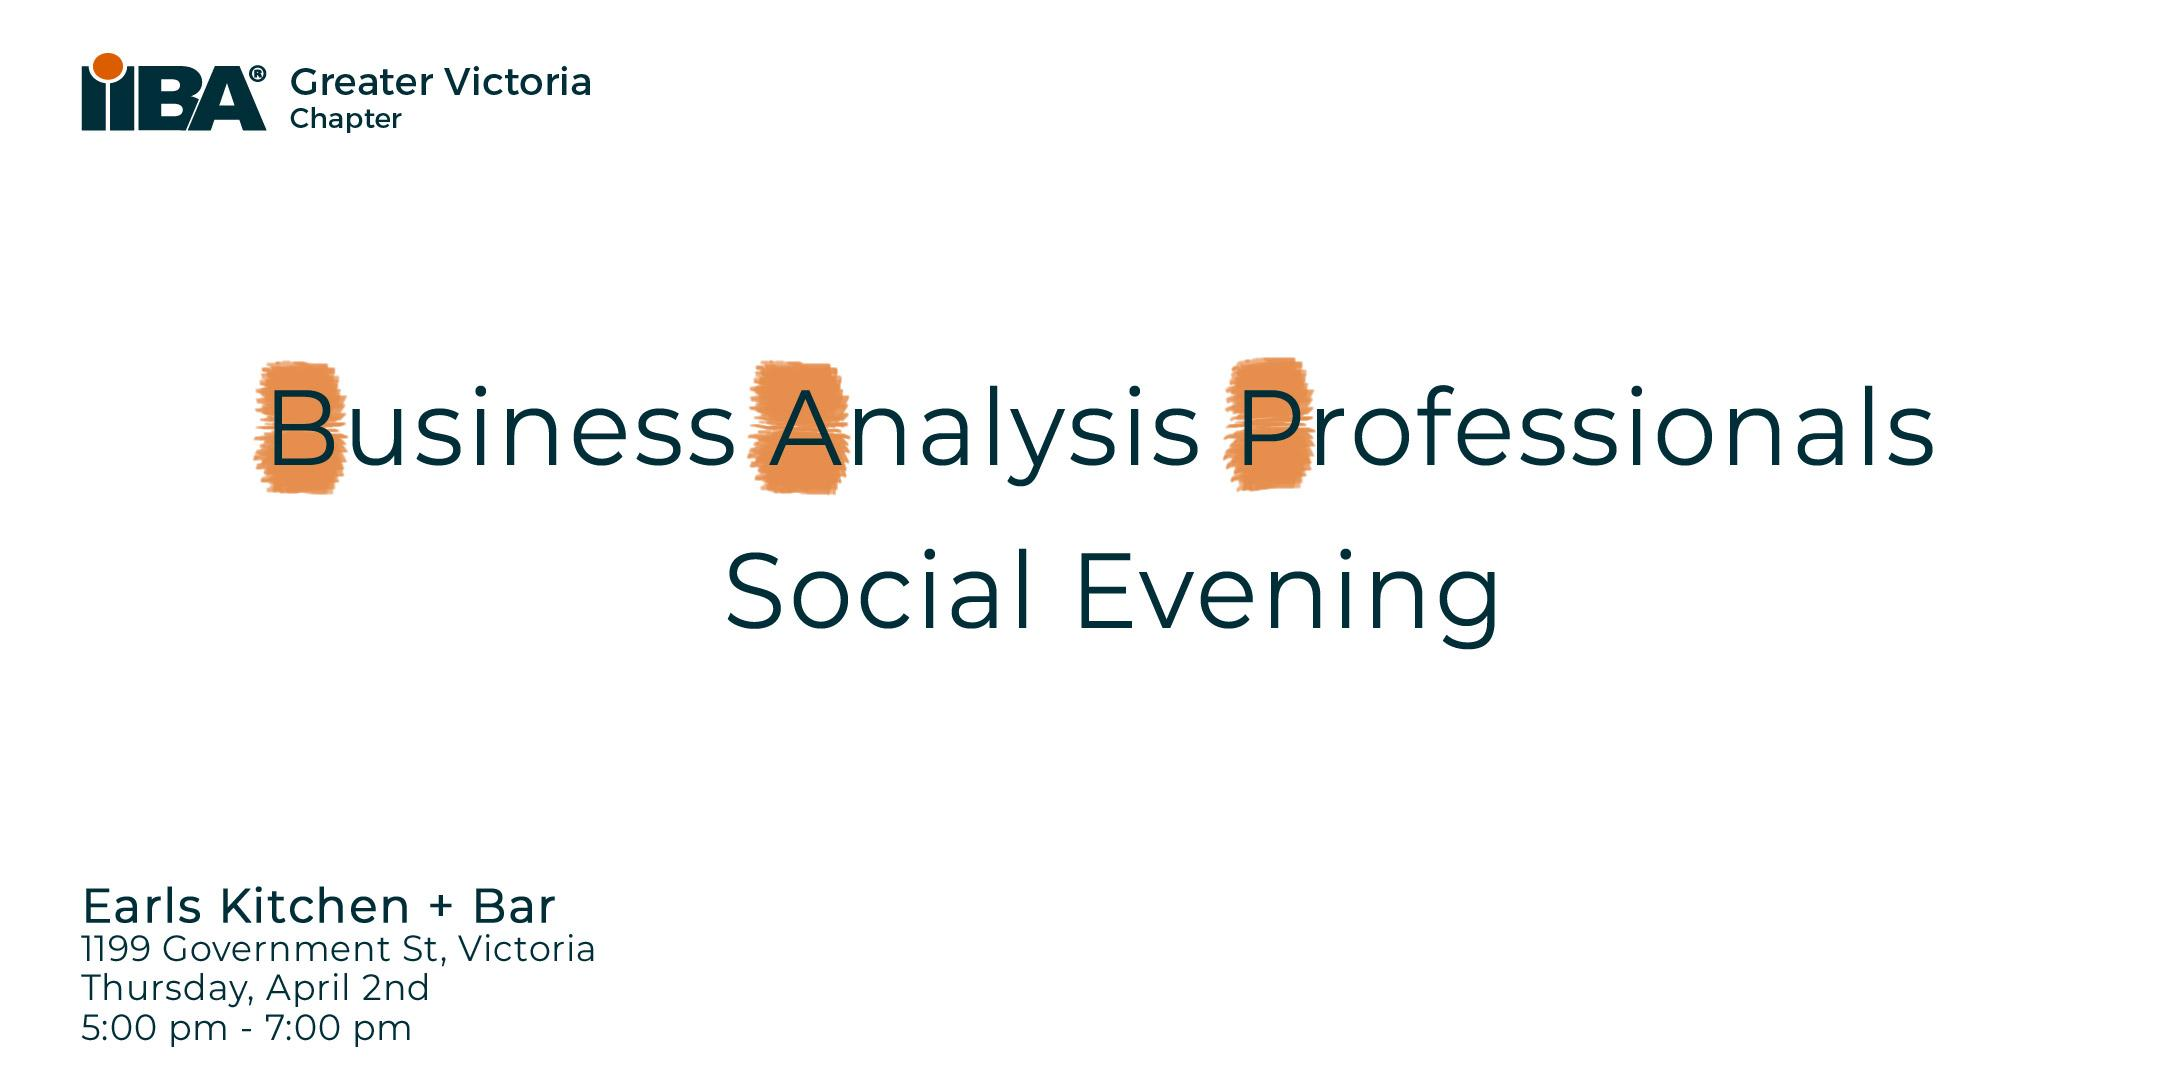 Business Analysis Professionals Social Evening